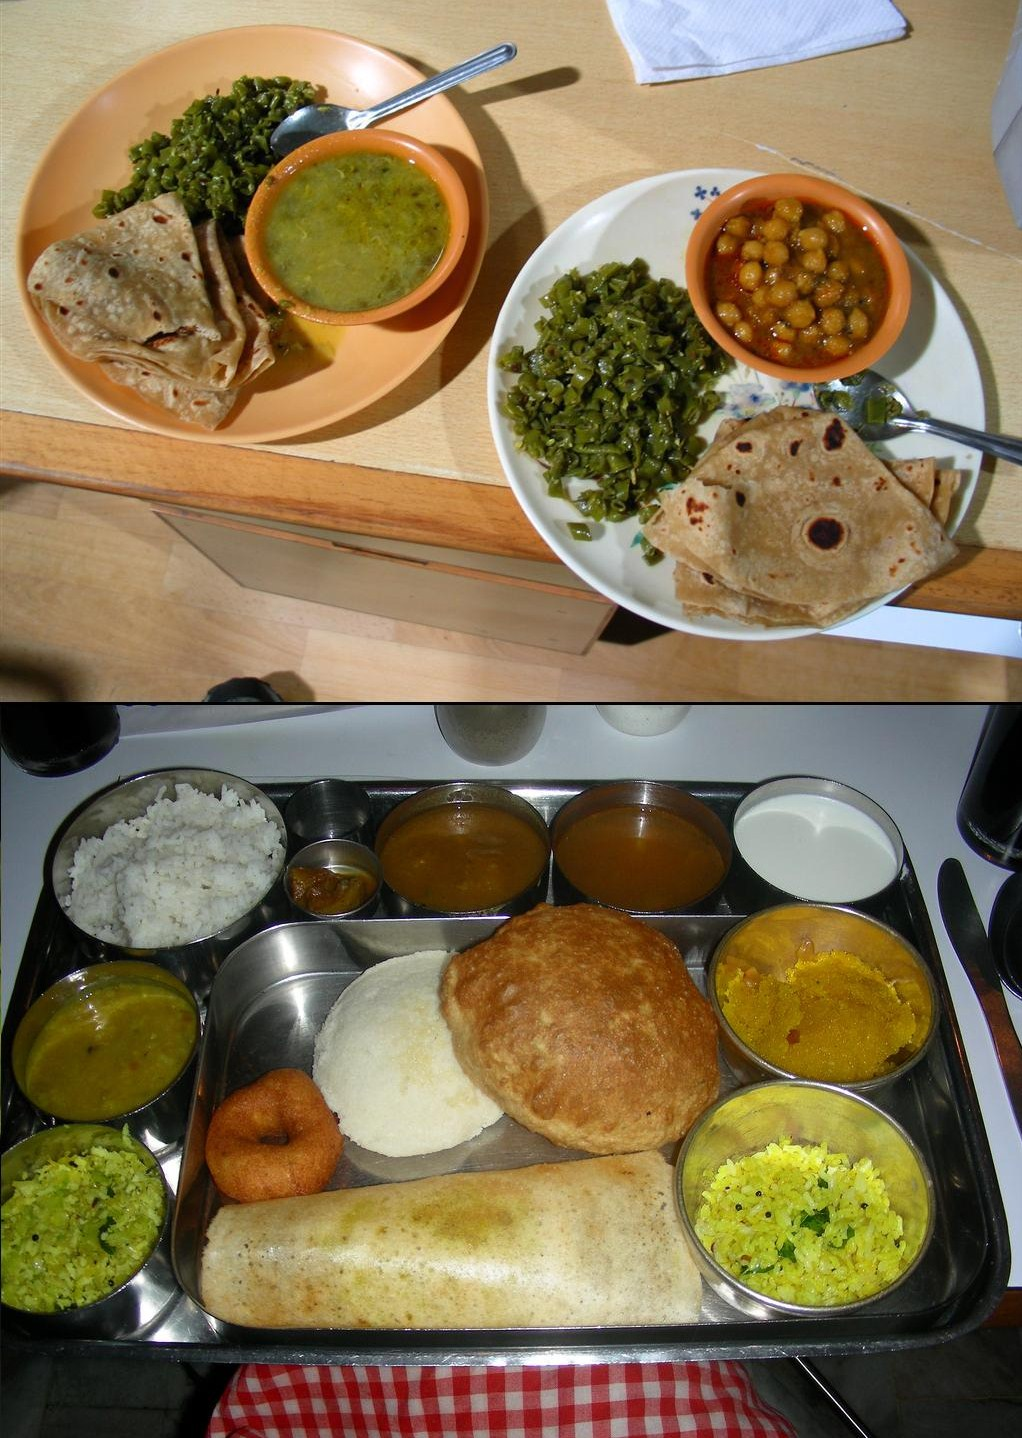 South asian cuisine wikipedia for Cuisine western